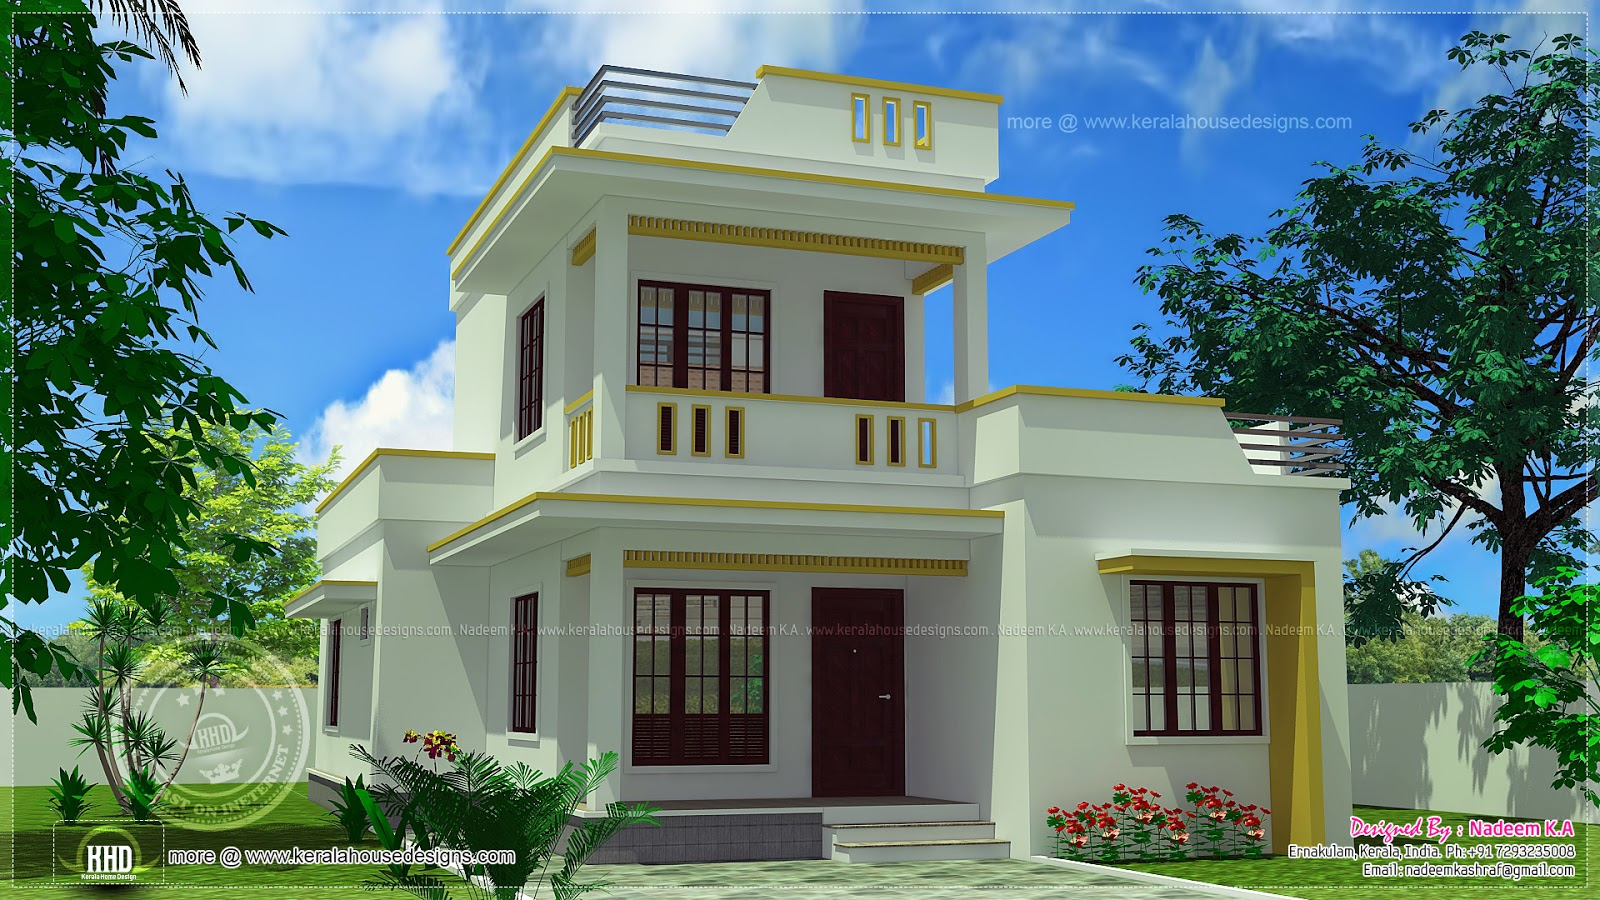 August 2013 kerala home design and floor plans for New home blueprints photos